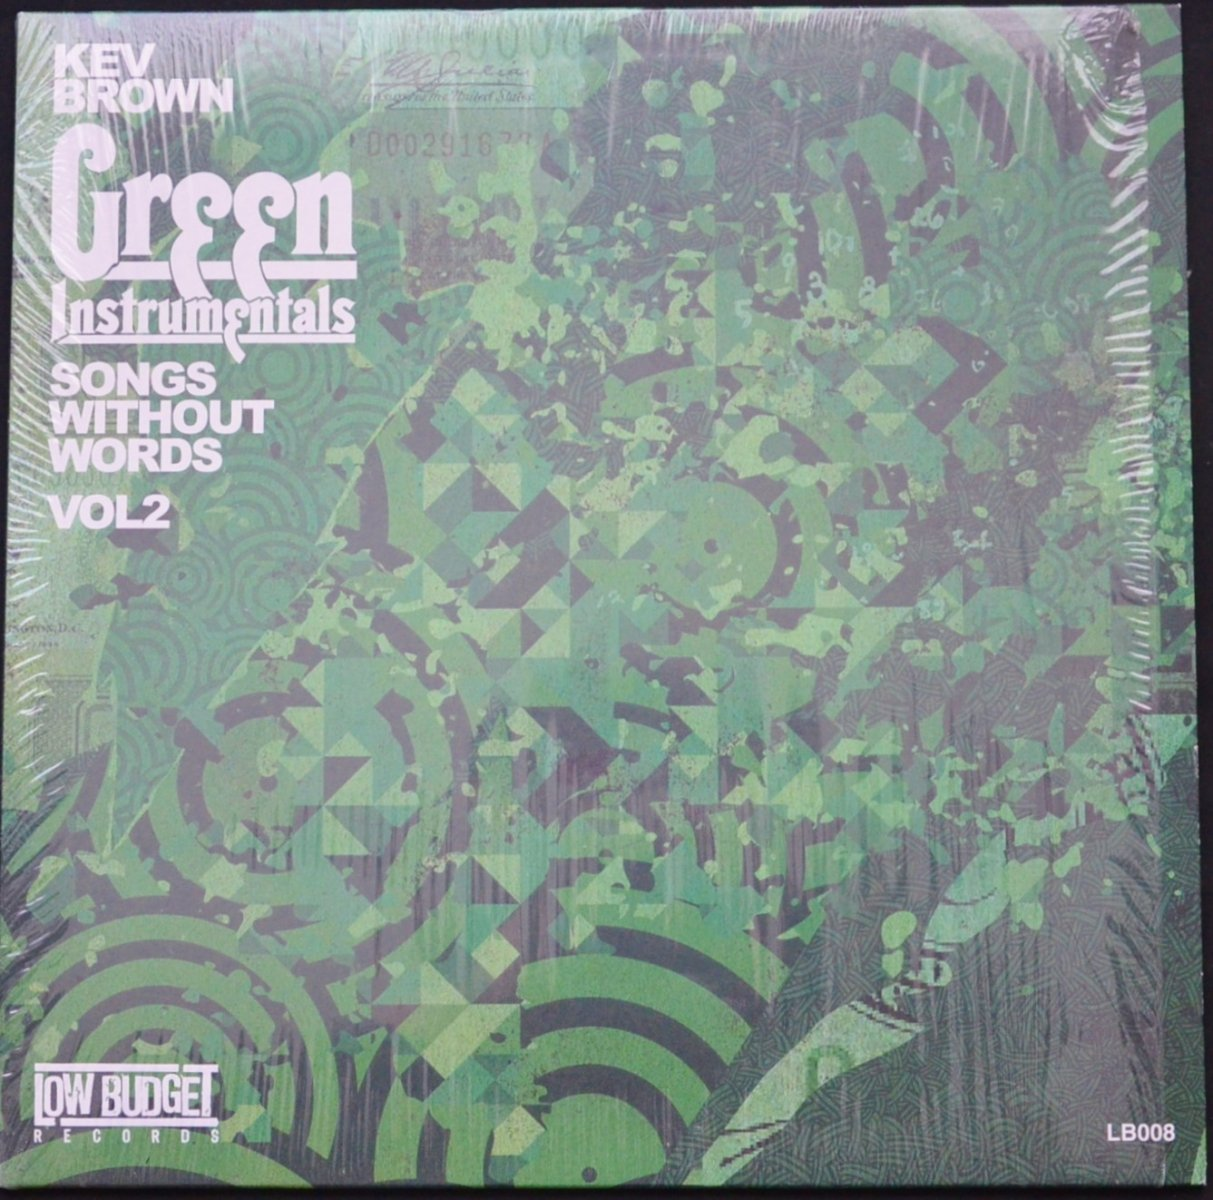 KEV BROWN ‎/ SONGS WITHOUT WORDS VOLUME 2 (GREEN INSTRUMENTALS) (1LP)